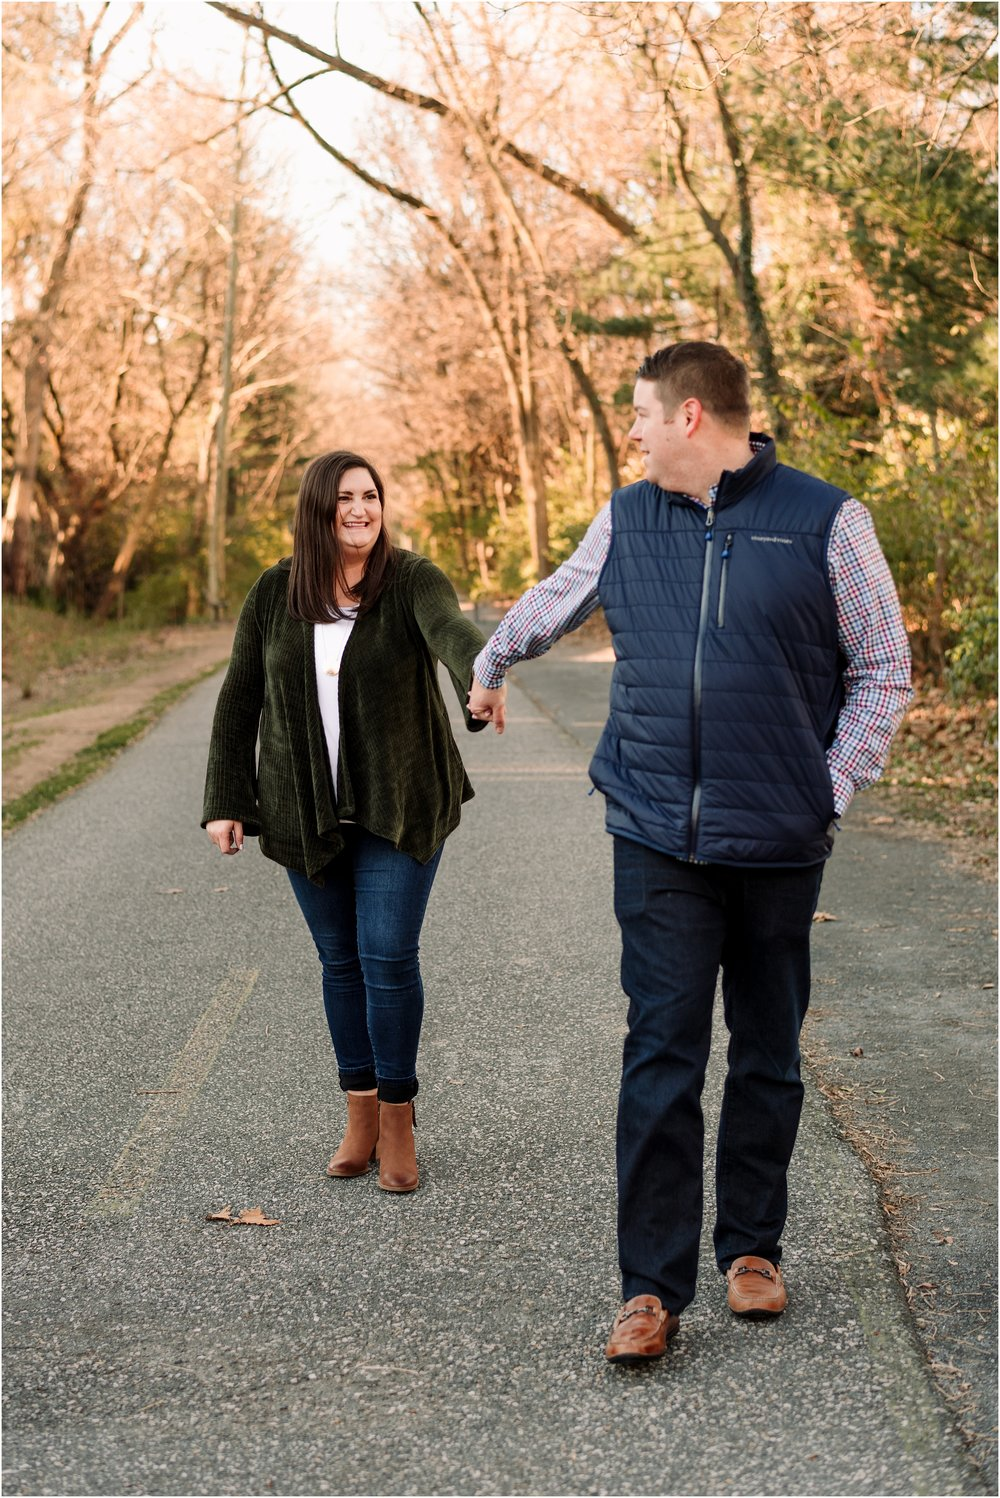 hannah leigh photography Engagement Session Bethesda MD_2546.jpg